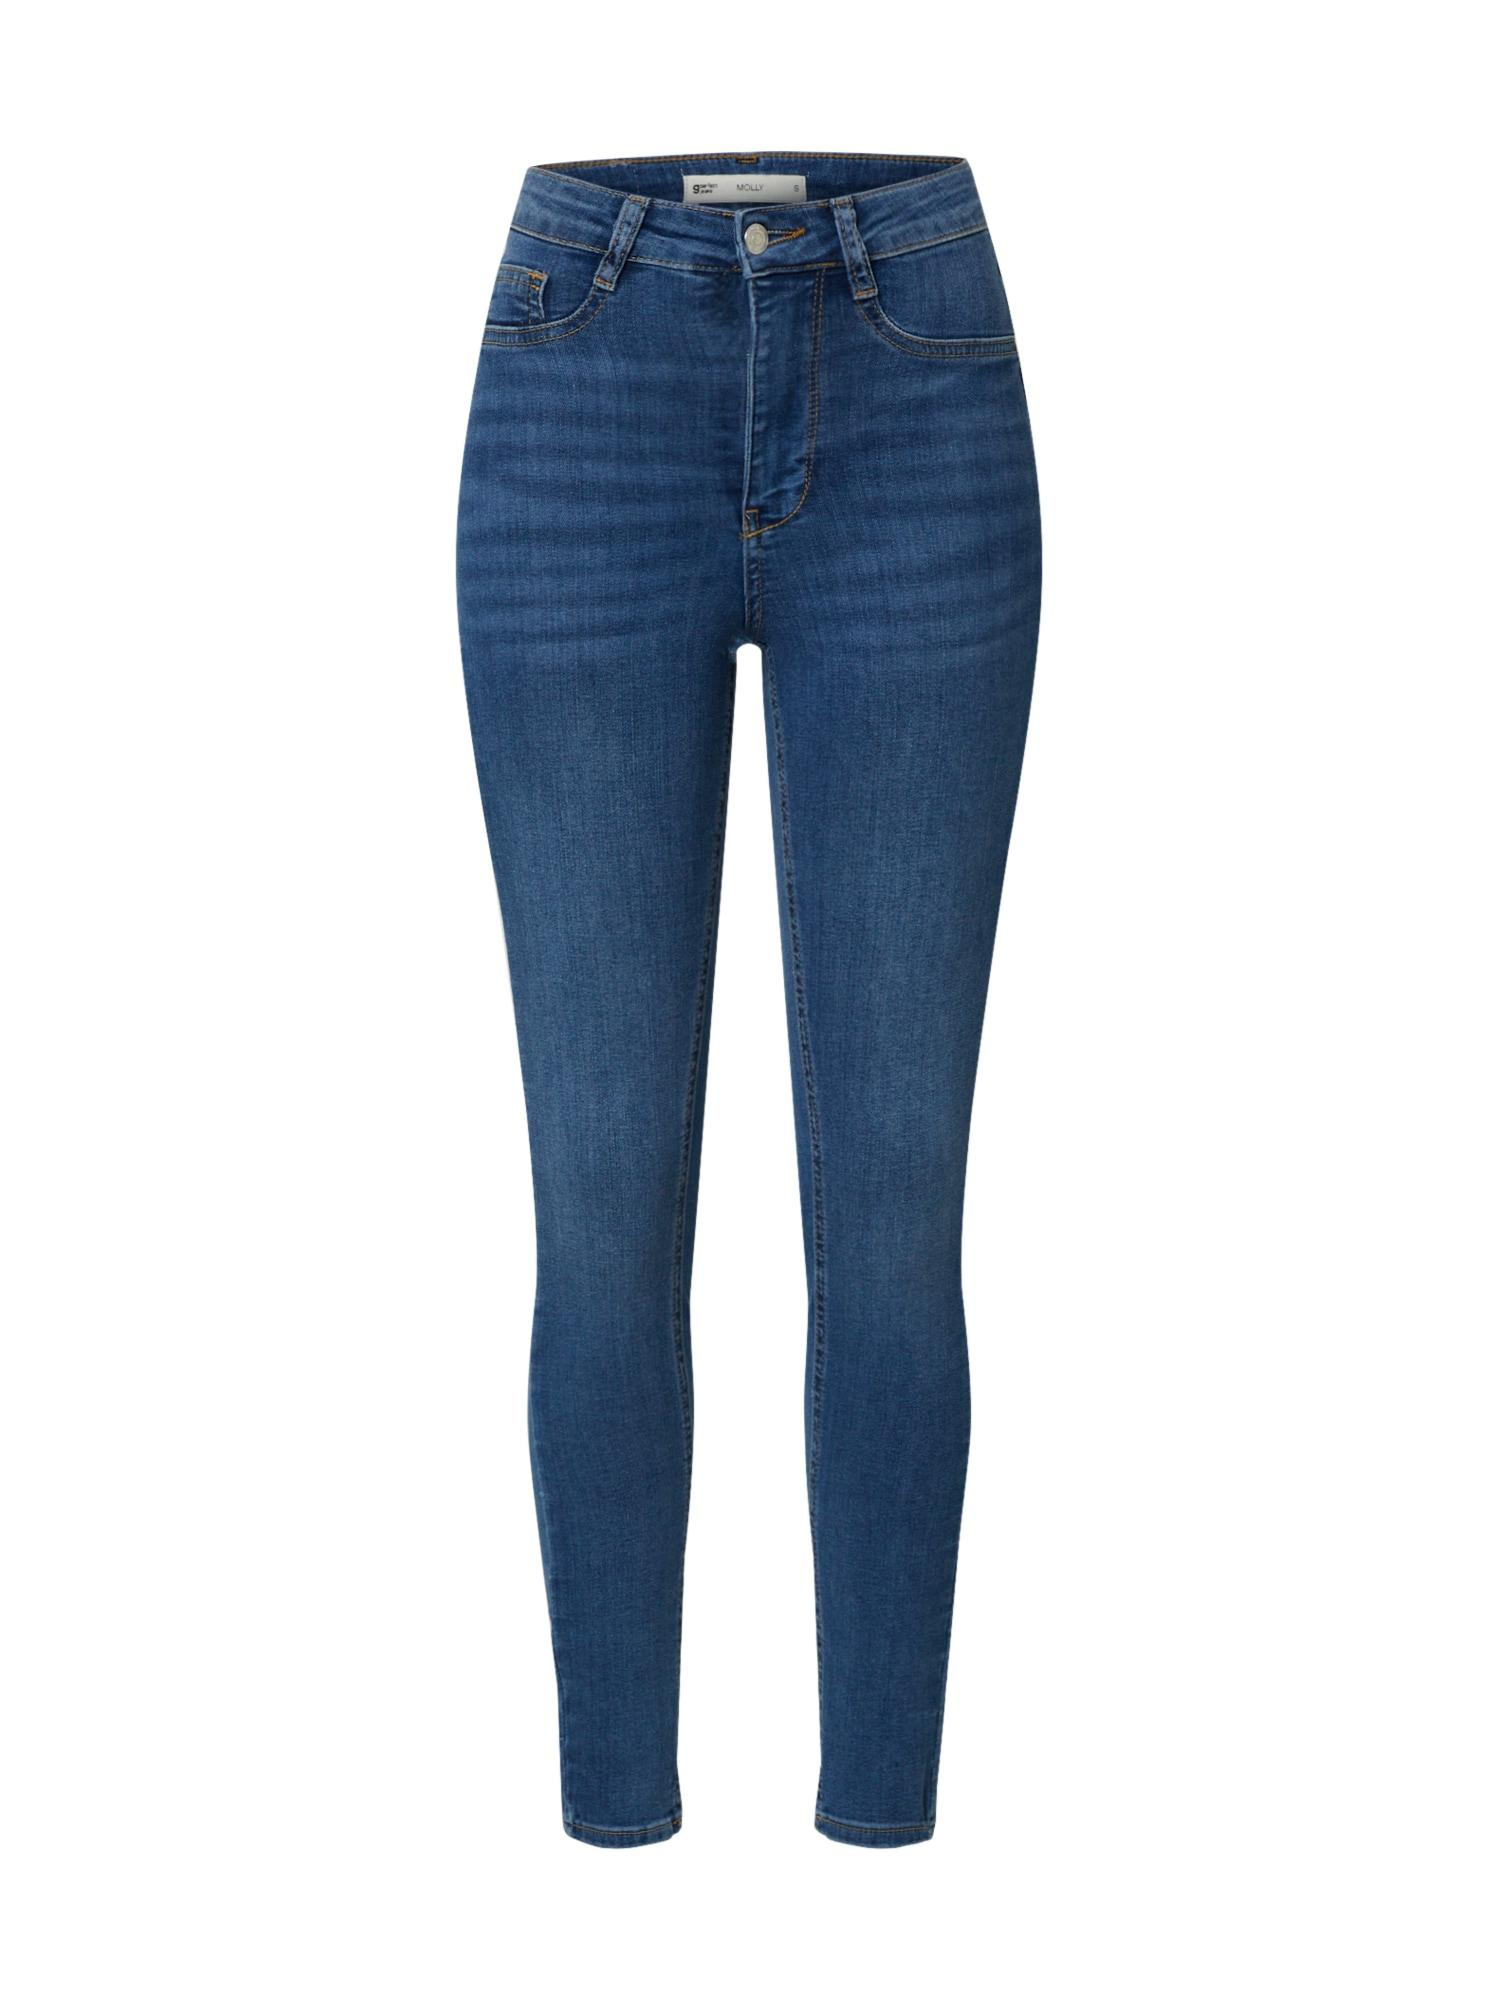 Gina Tricot Jeans 'Molly highwaist jeans' blue denim